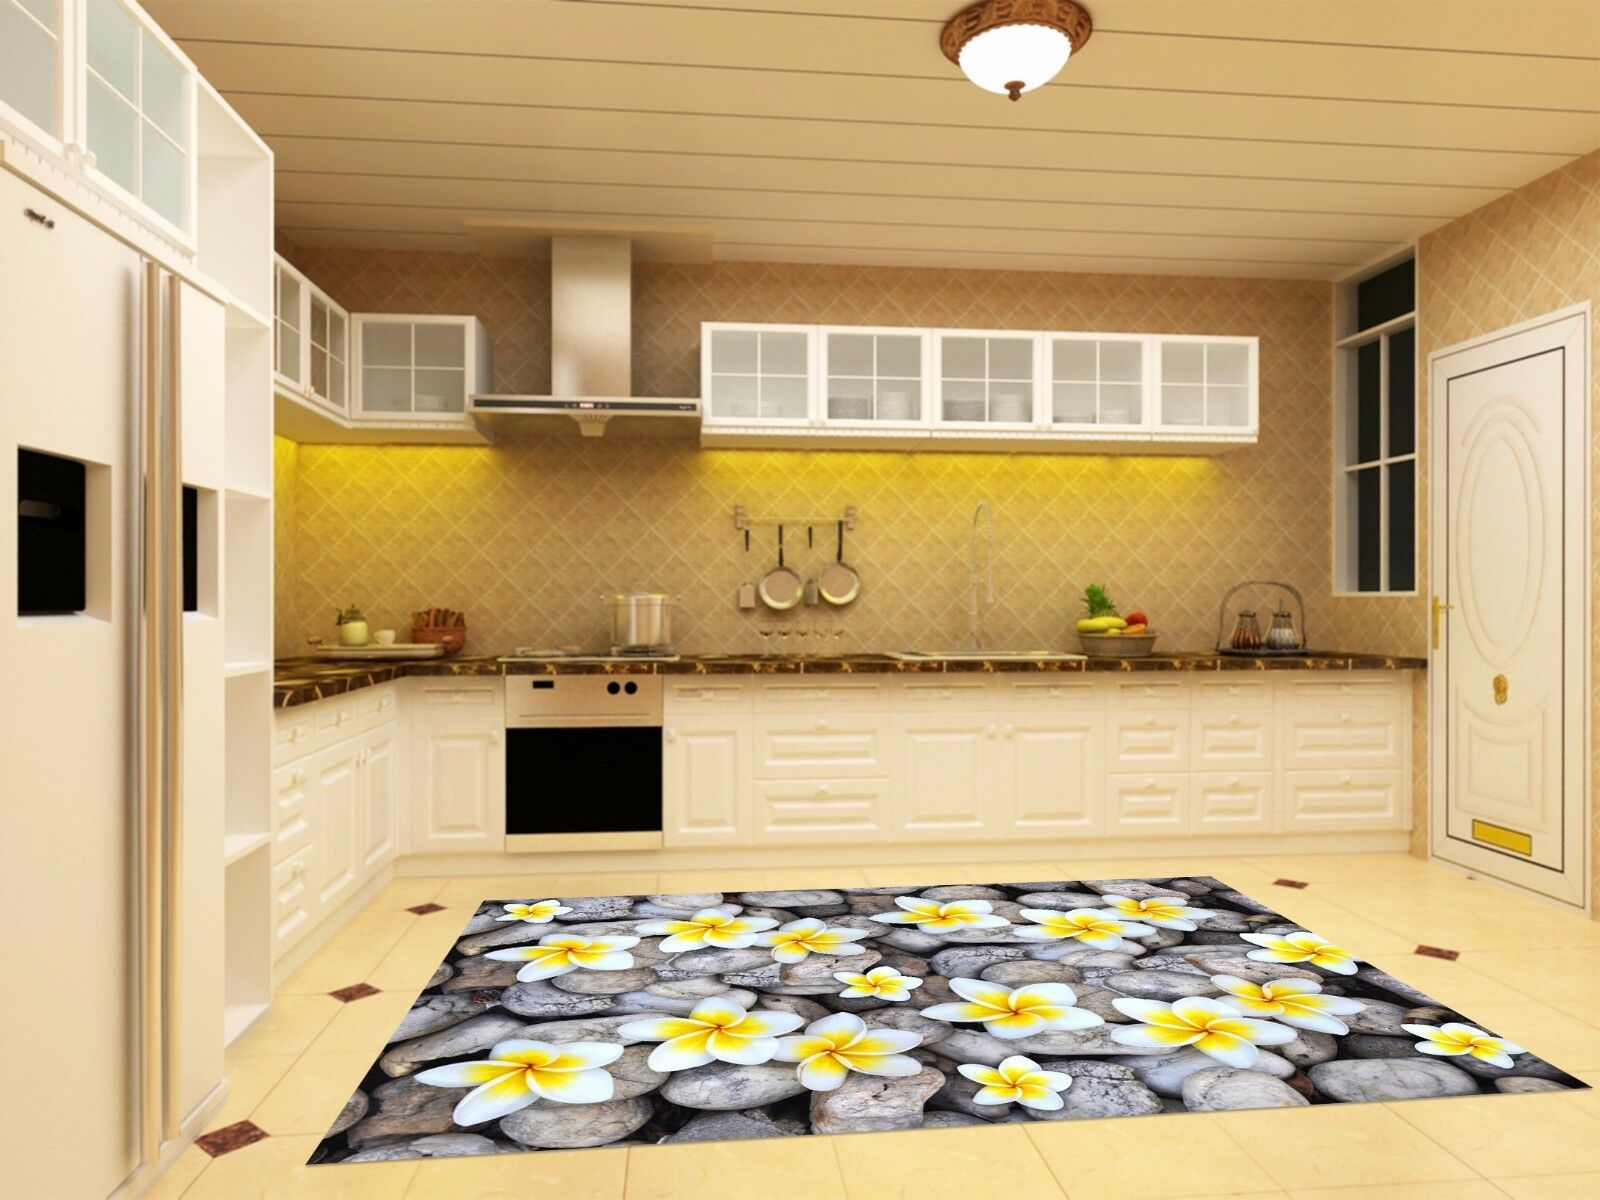 3D Stone Flower 723 Kitchen Mat Floor Murals Wall Print Wall Deco UK Carly